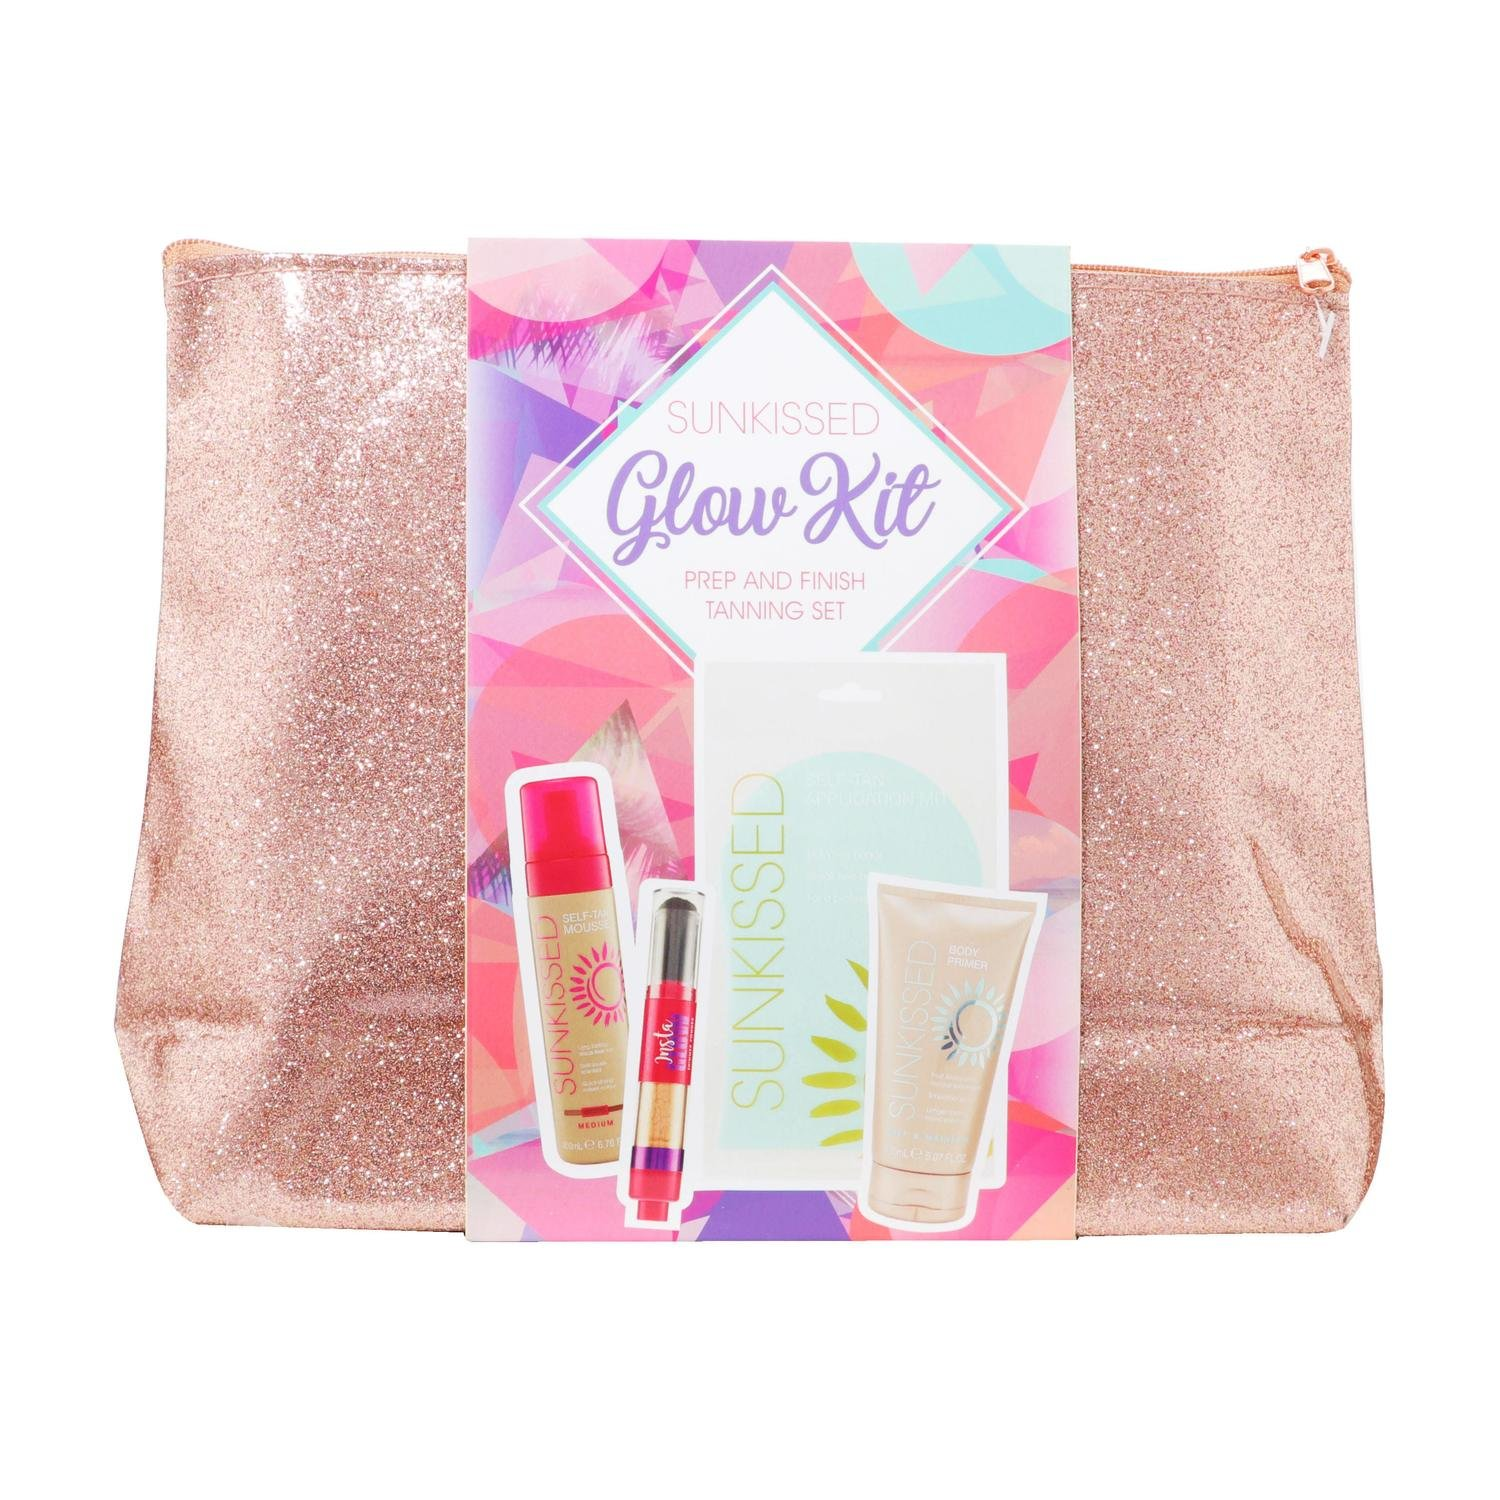 Sunkissed Glow Gift Set.